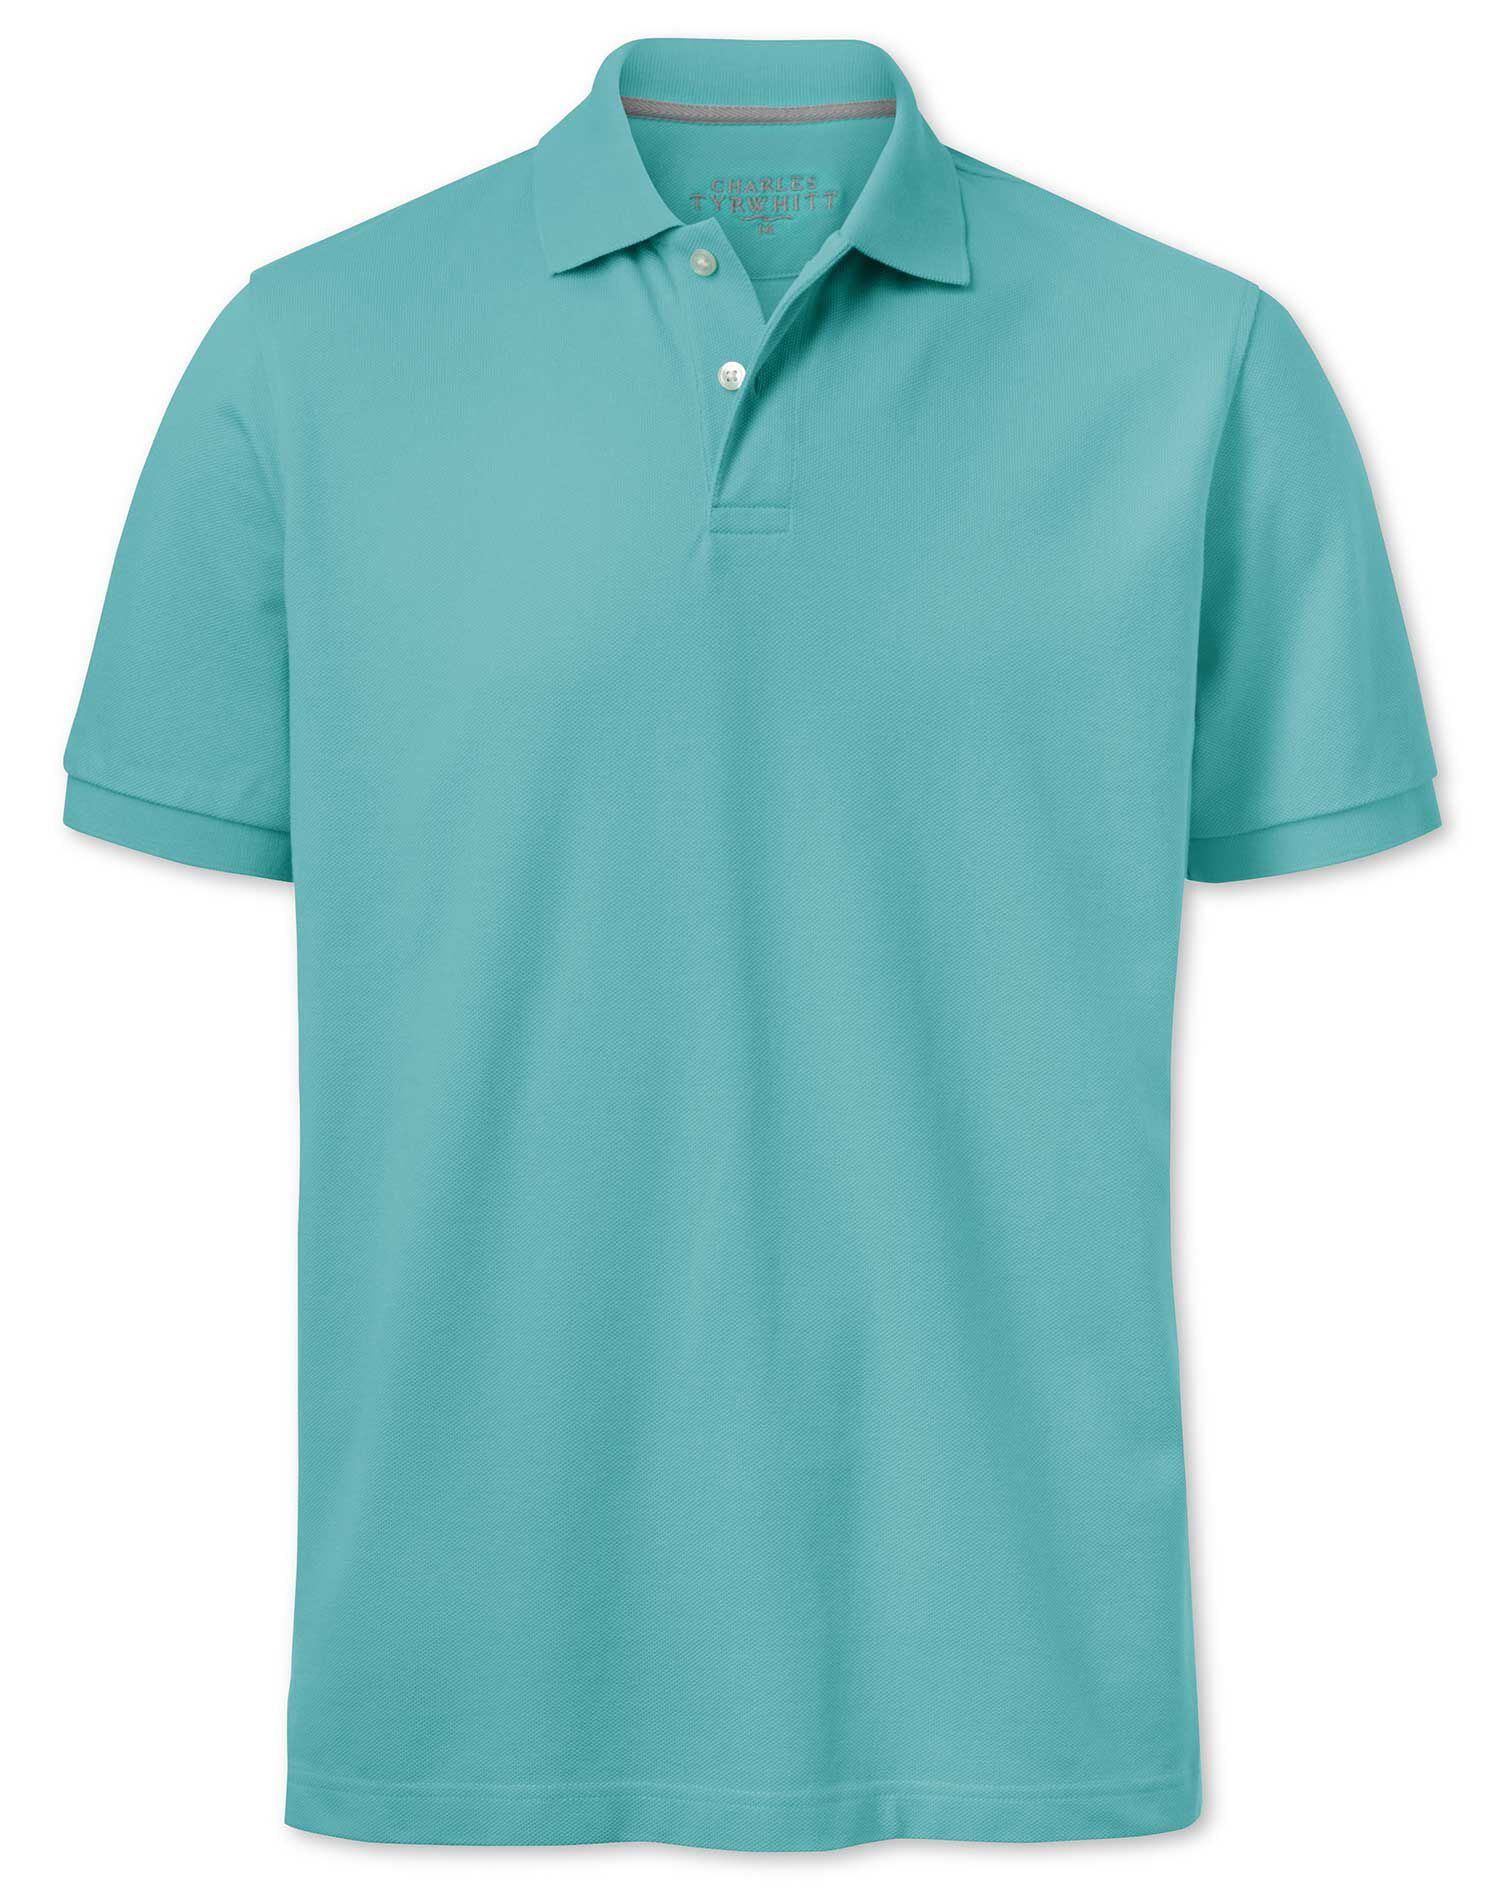 Turquoise Pique Cotton Polo Size Medium by Charles Tyrwhitt